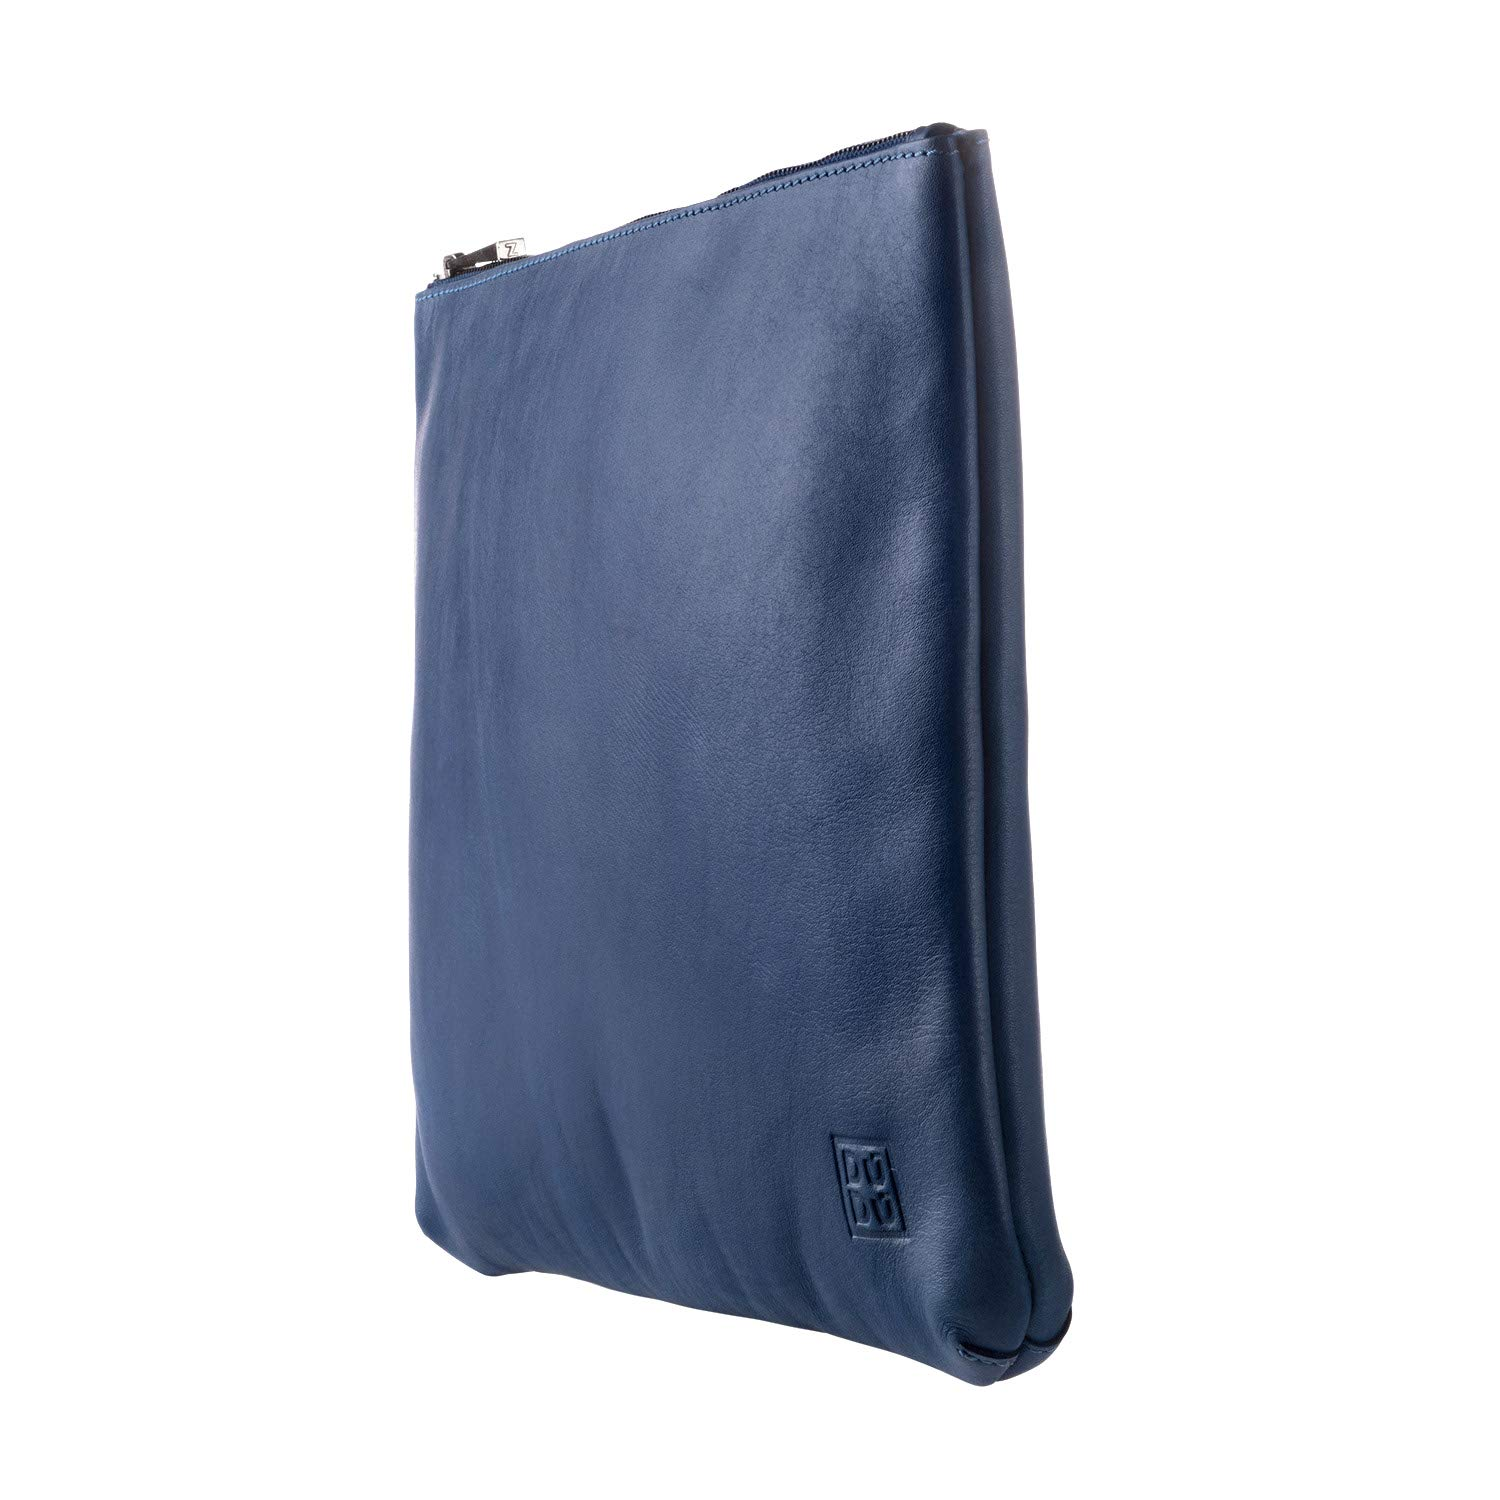 DUDU Clutch Bag Purse with Handle for ladies and men in Real Leather Slim & Large Handbag with Zipper closure - Isa - Blue by DuDu (Image #5)